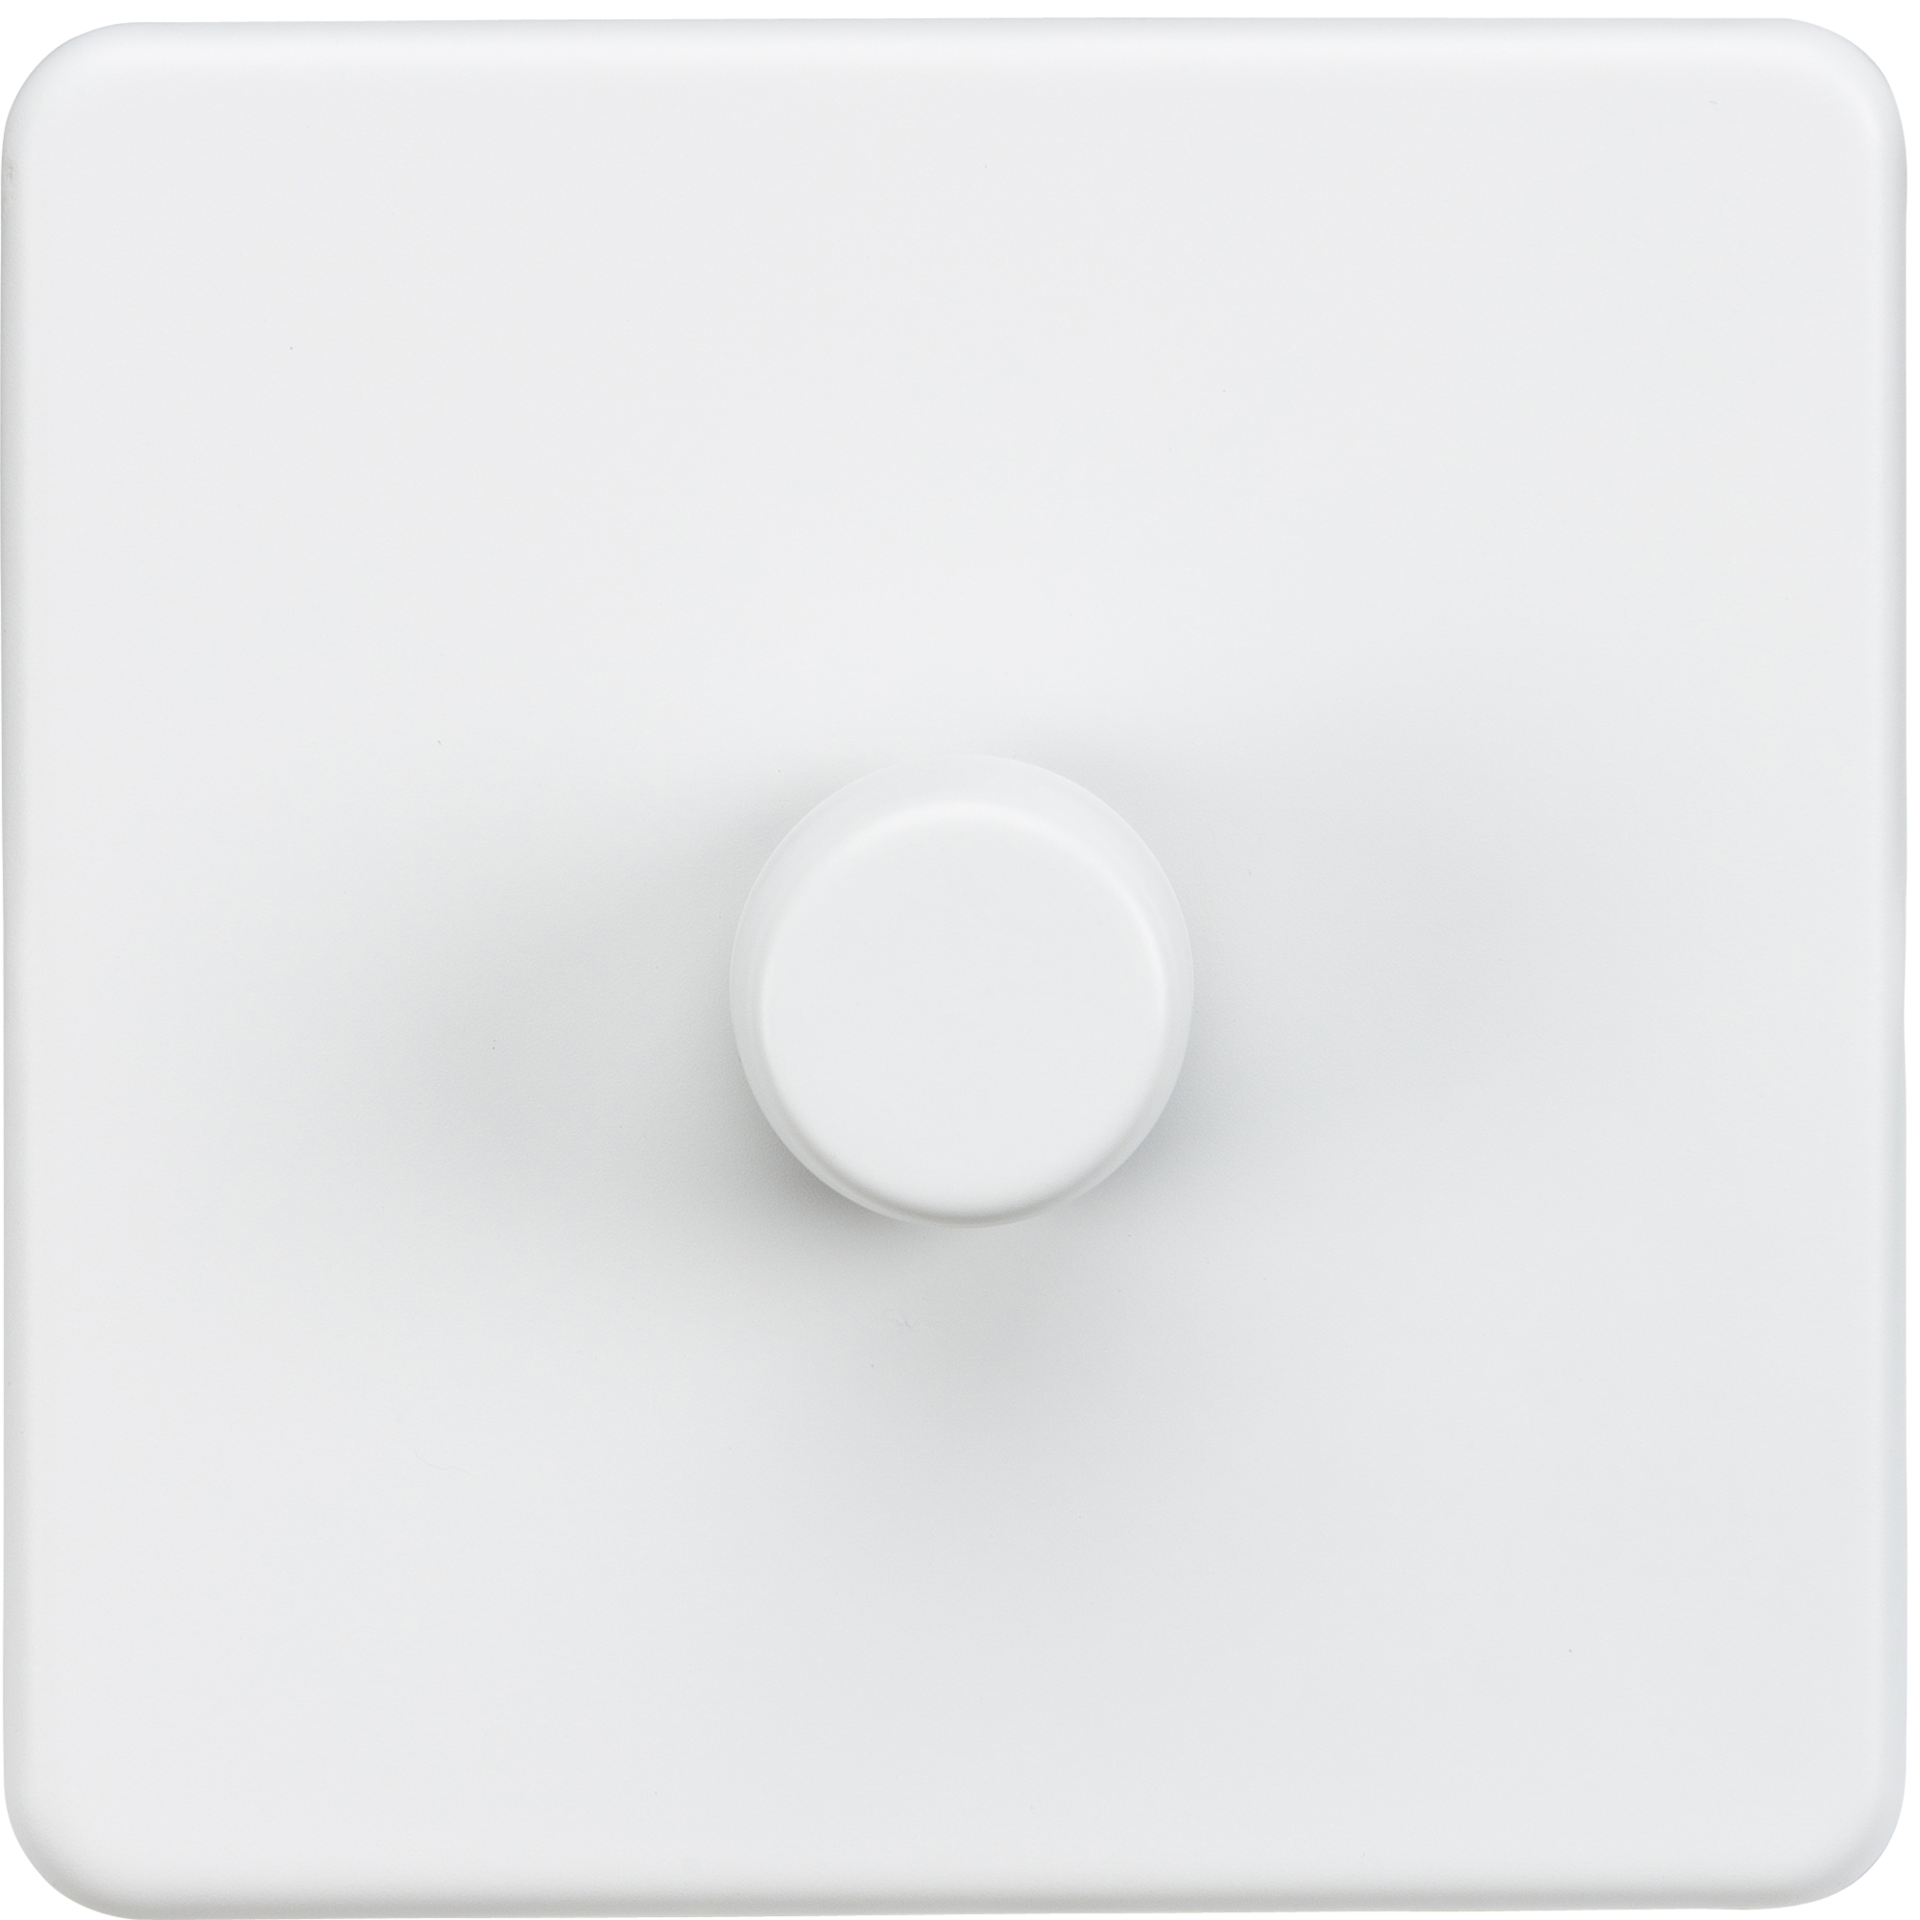 Screwless 1G 2 way 40-400W dimmer switch - Matt white